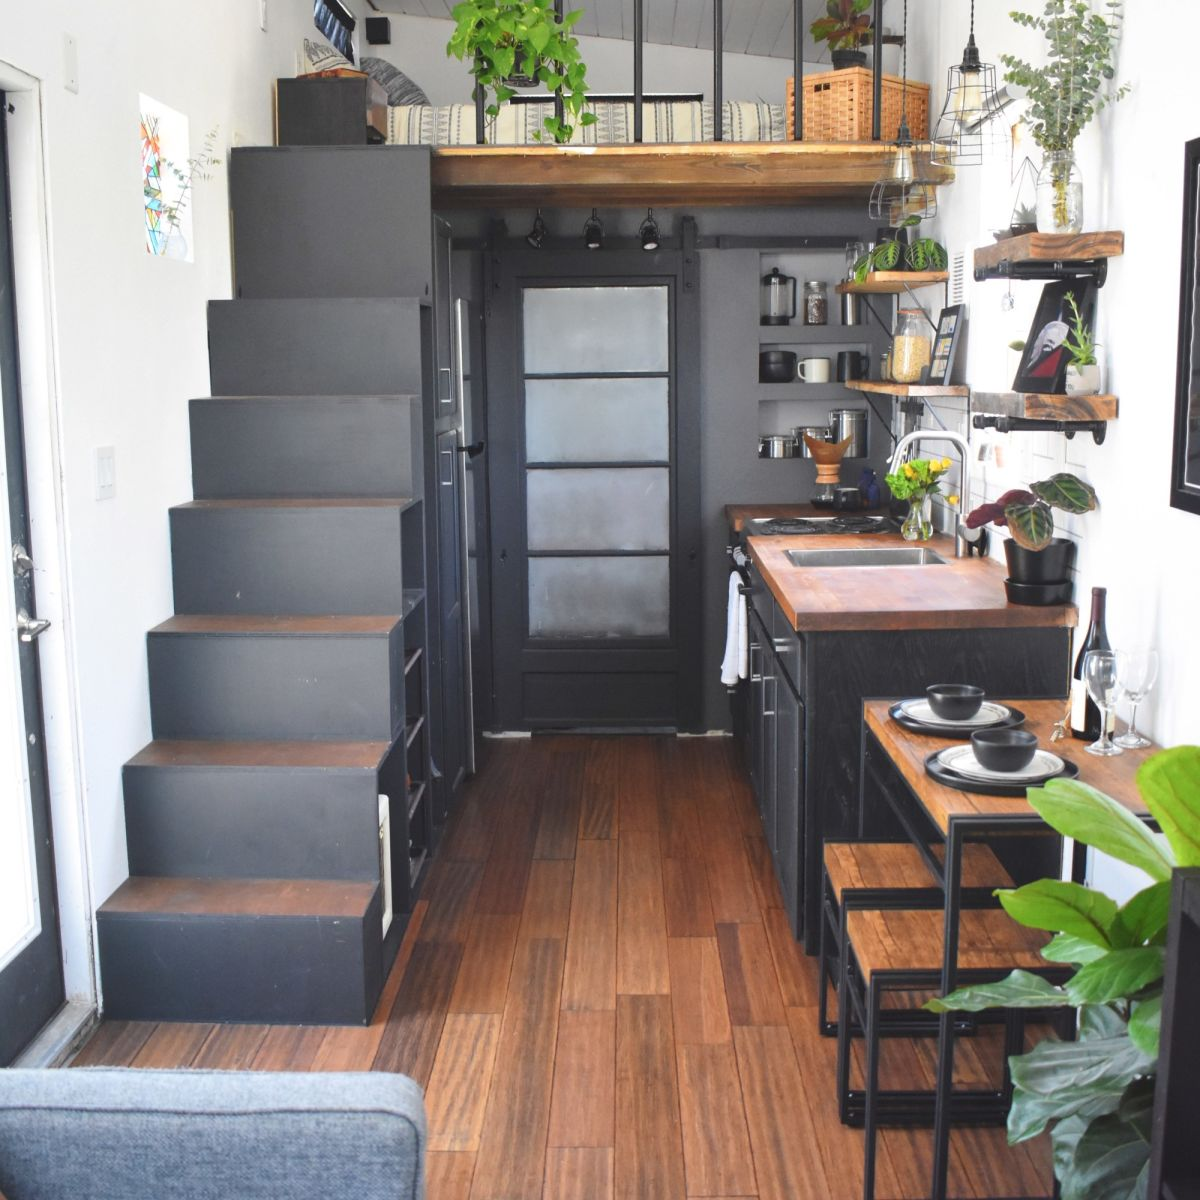 REDUCED PRICE Fully Furnished 26ft Tiny House In Orlando